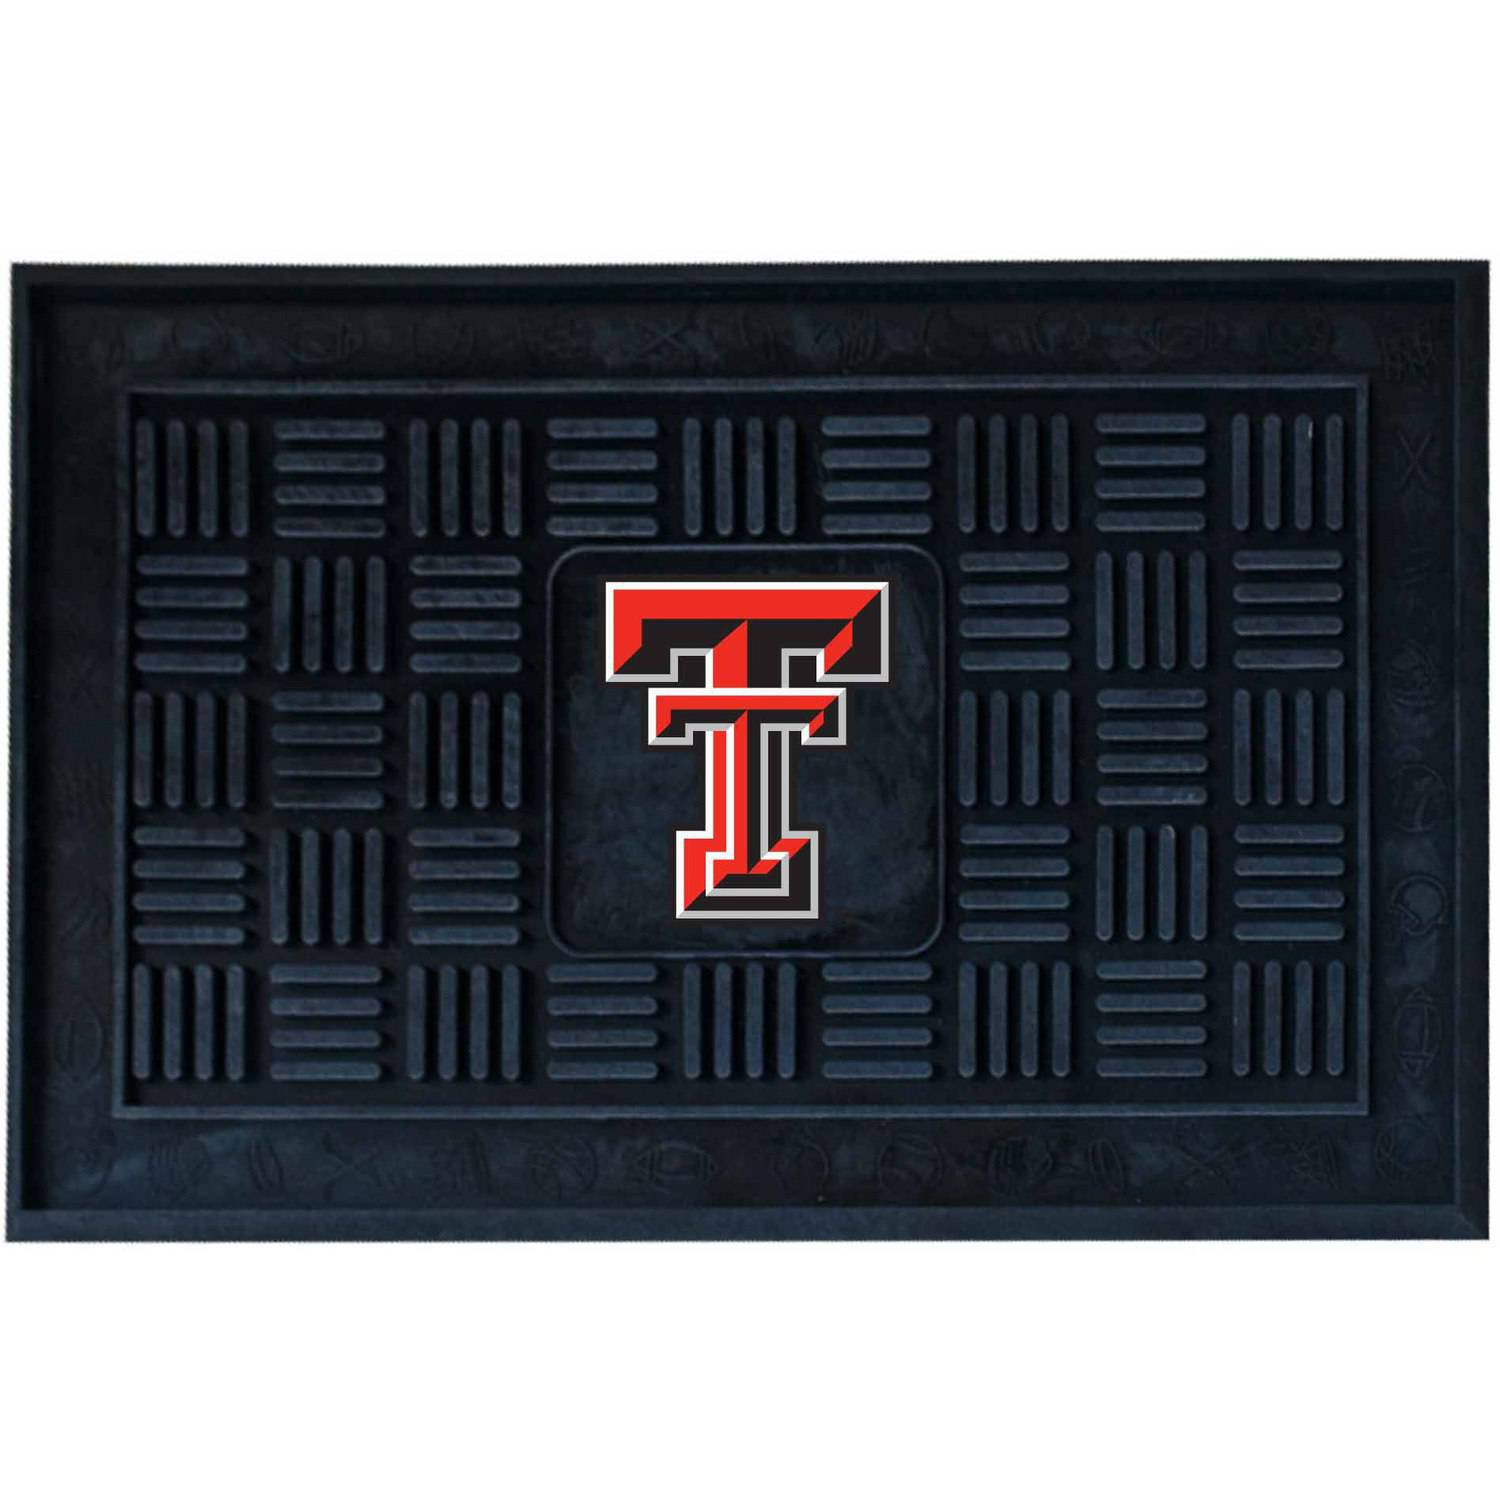 Texas Tech University Medallion Door Mat